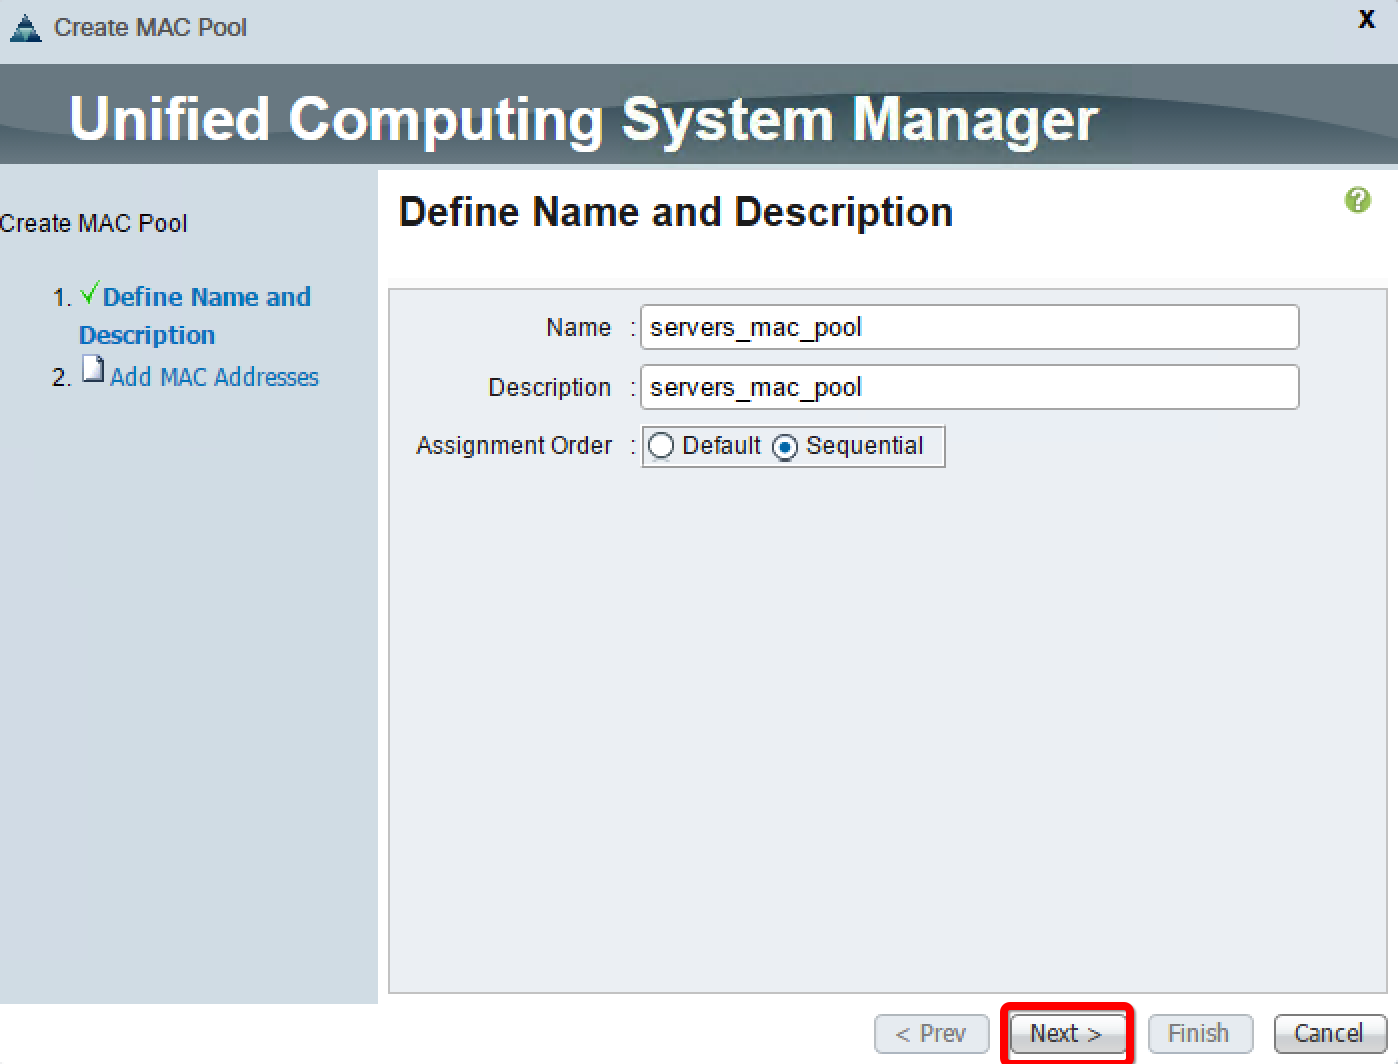 Learning to create a MAC pool - Implementing Cisco UCS Solutions